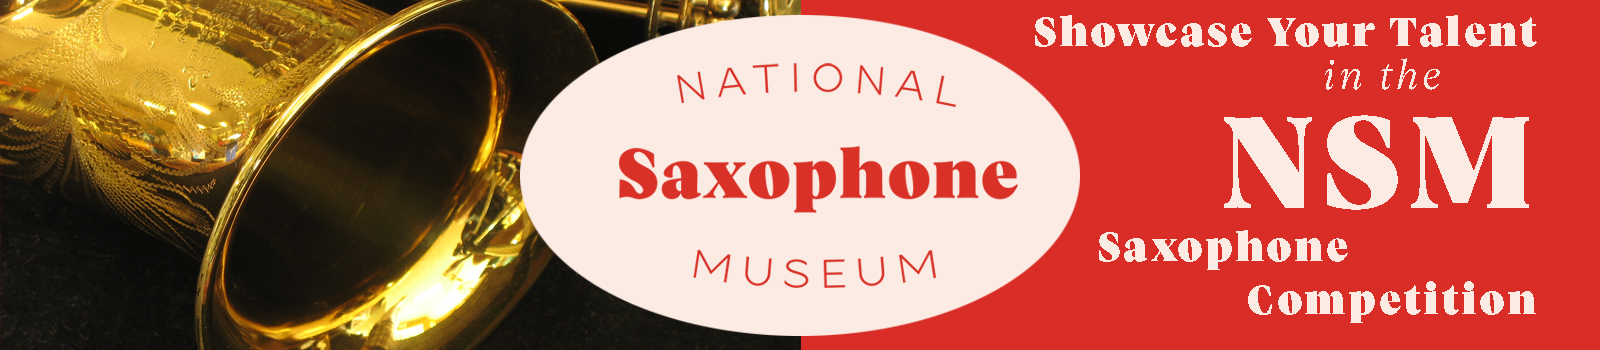 Showcase Your Talent in the NSM Saxophone Museum Competition Rules Header